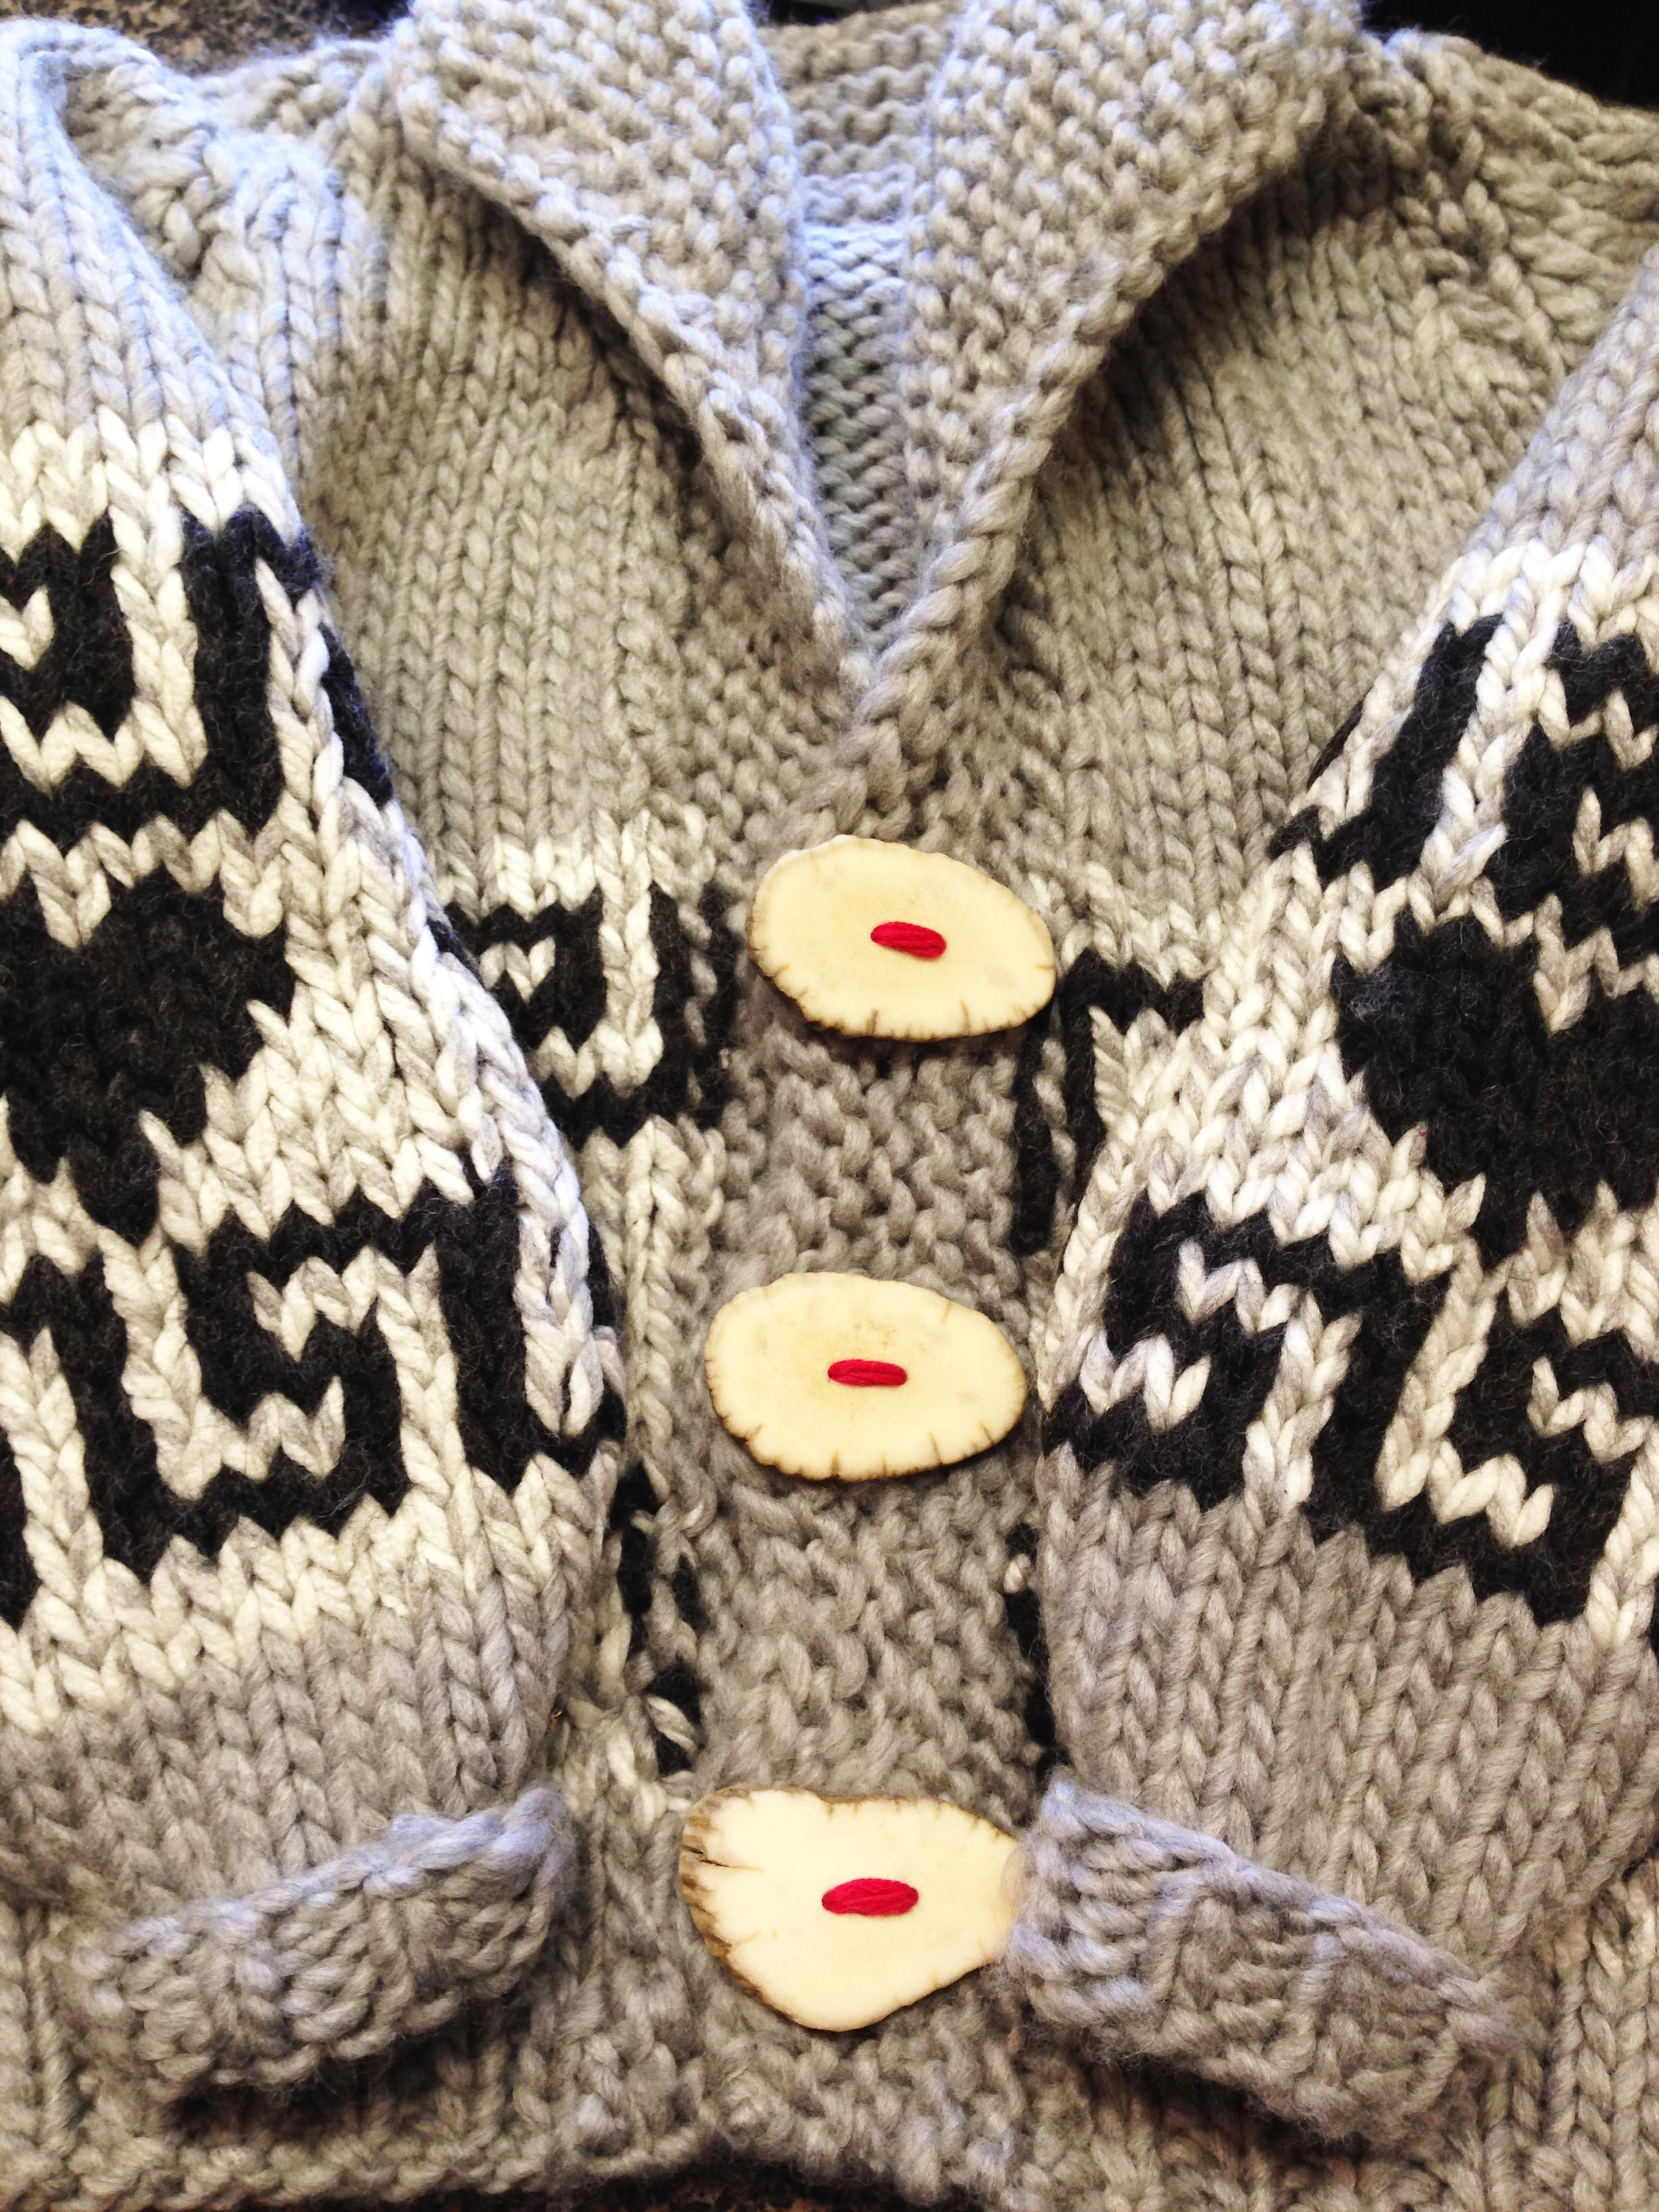 knitting a baby cowichan sweater: a love/hate affair